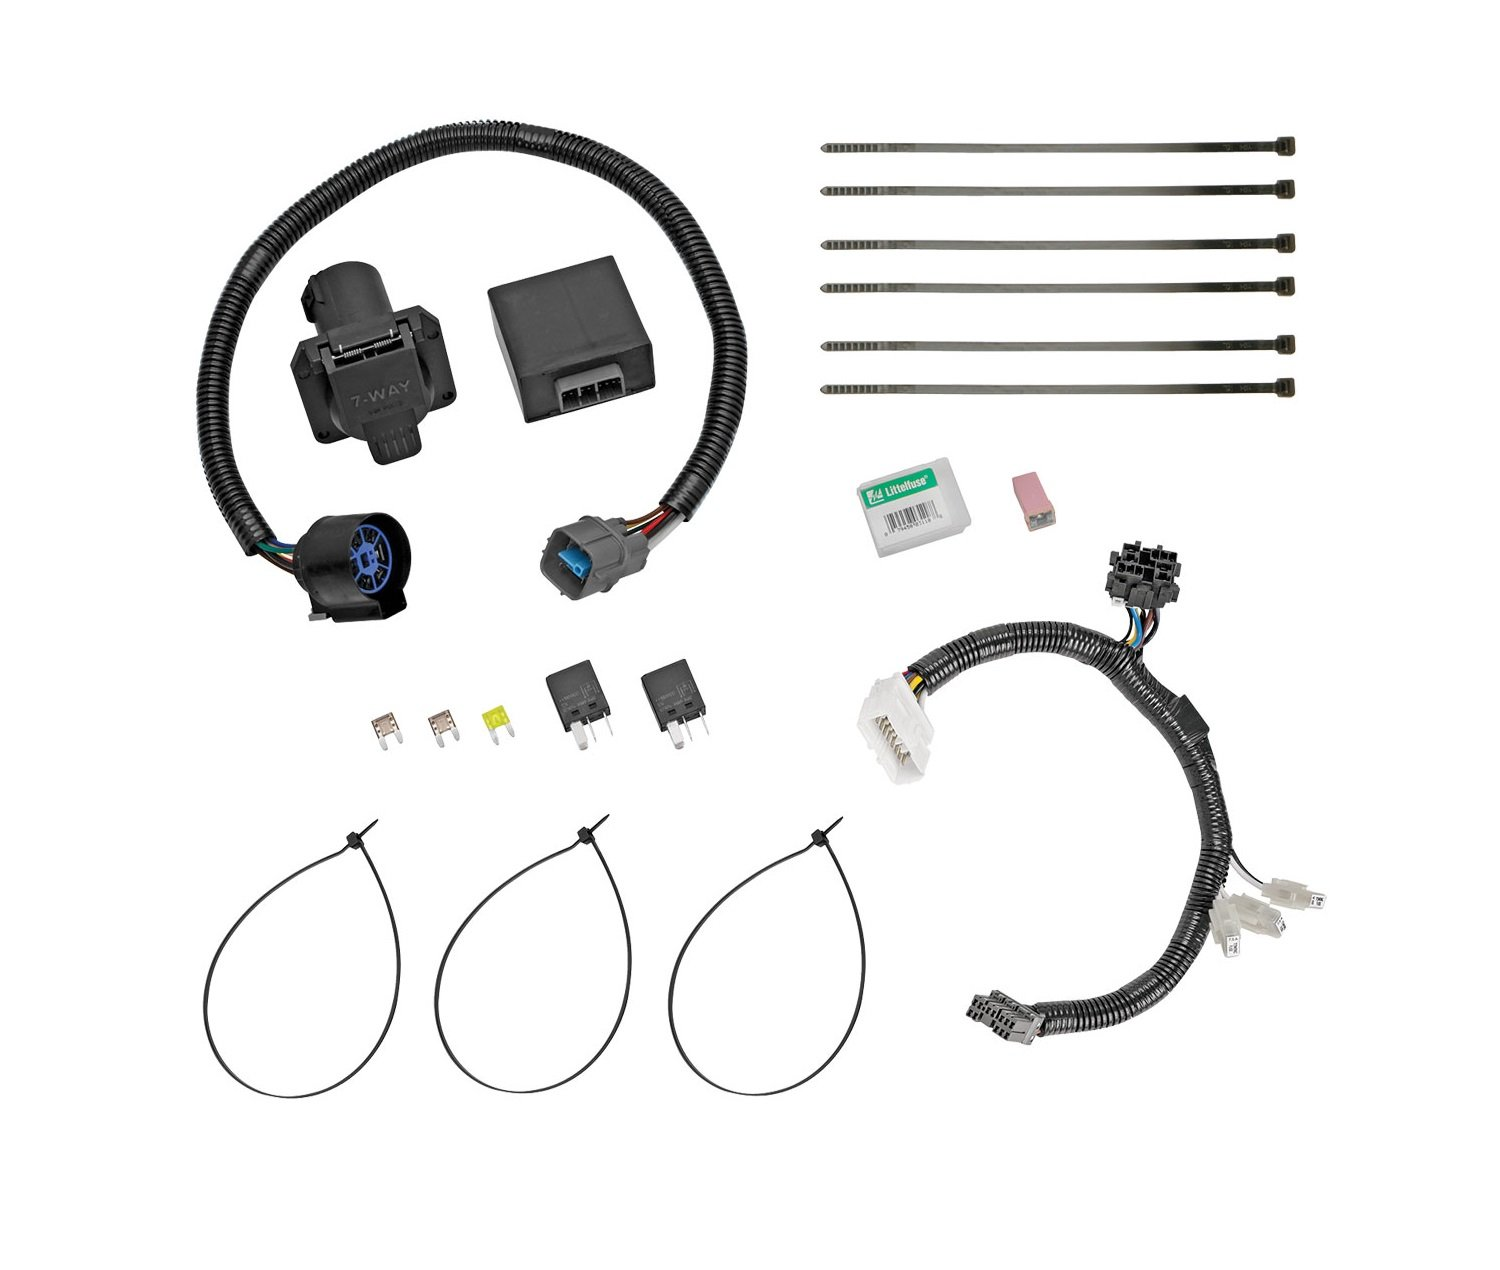 Amazon.com: Tow Ready 118265 Trailer Wiring Connector Kit for Honda Pilot:  Automotive